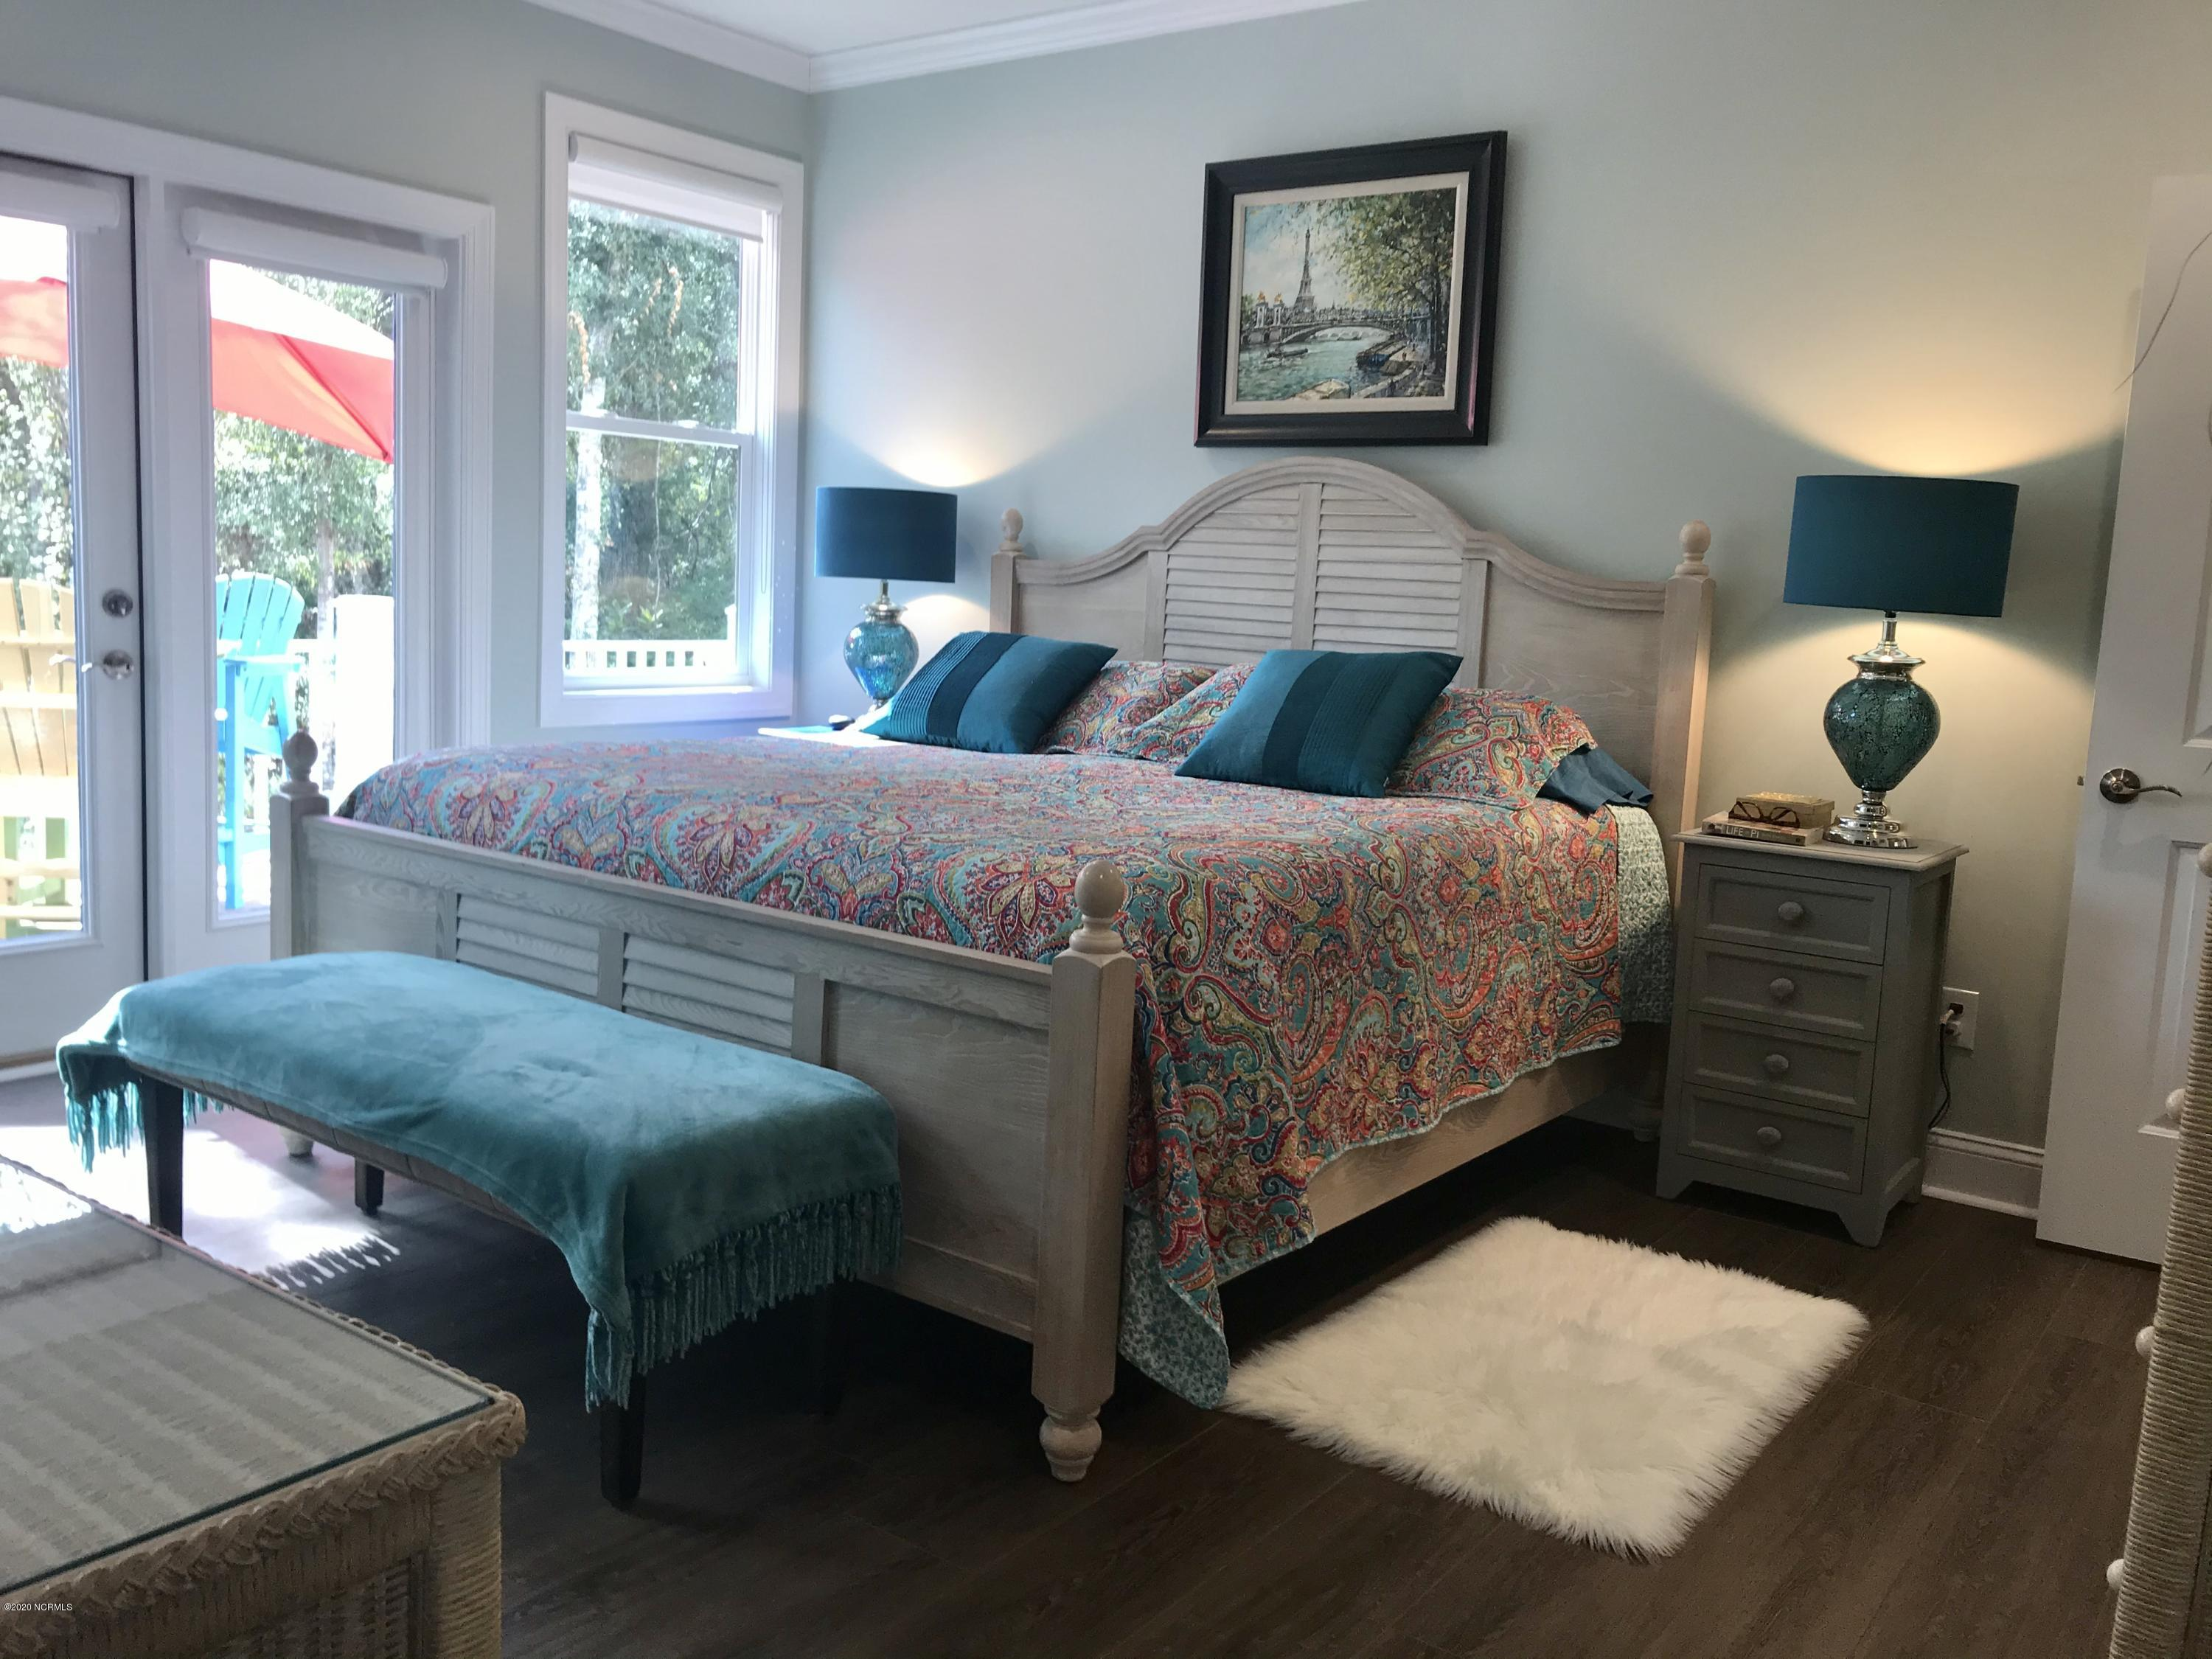 101 Evergreen Lane, Pine Knoll Shores, North Carolina 28512, 3 Bedrooms Bedrooms, 5 Rooms Rooms,2 BathroomsBathrooms,Single family residence,For sale,Evergreen,100190216